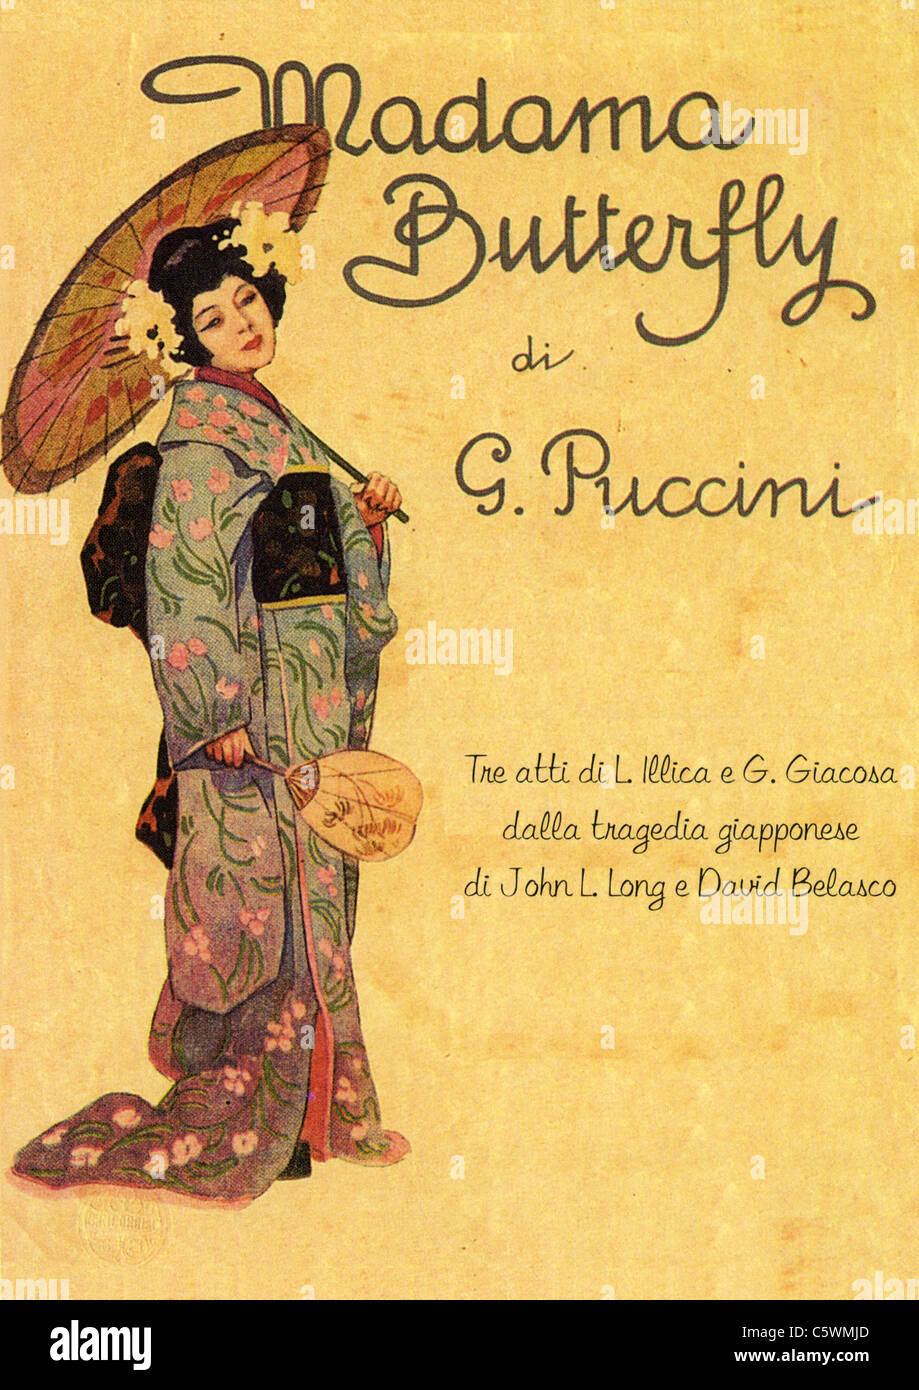 MADAME BUTTERFLY Poster for Puccini's opera - Stock Image